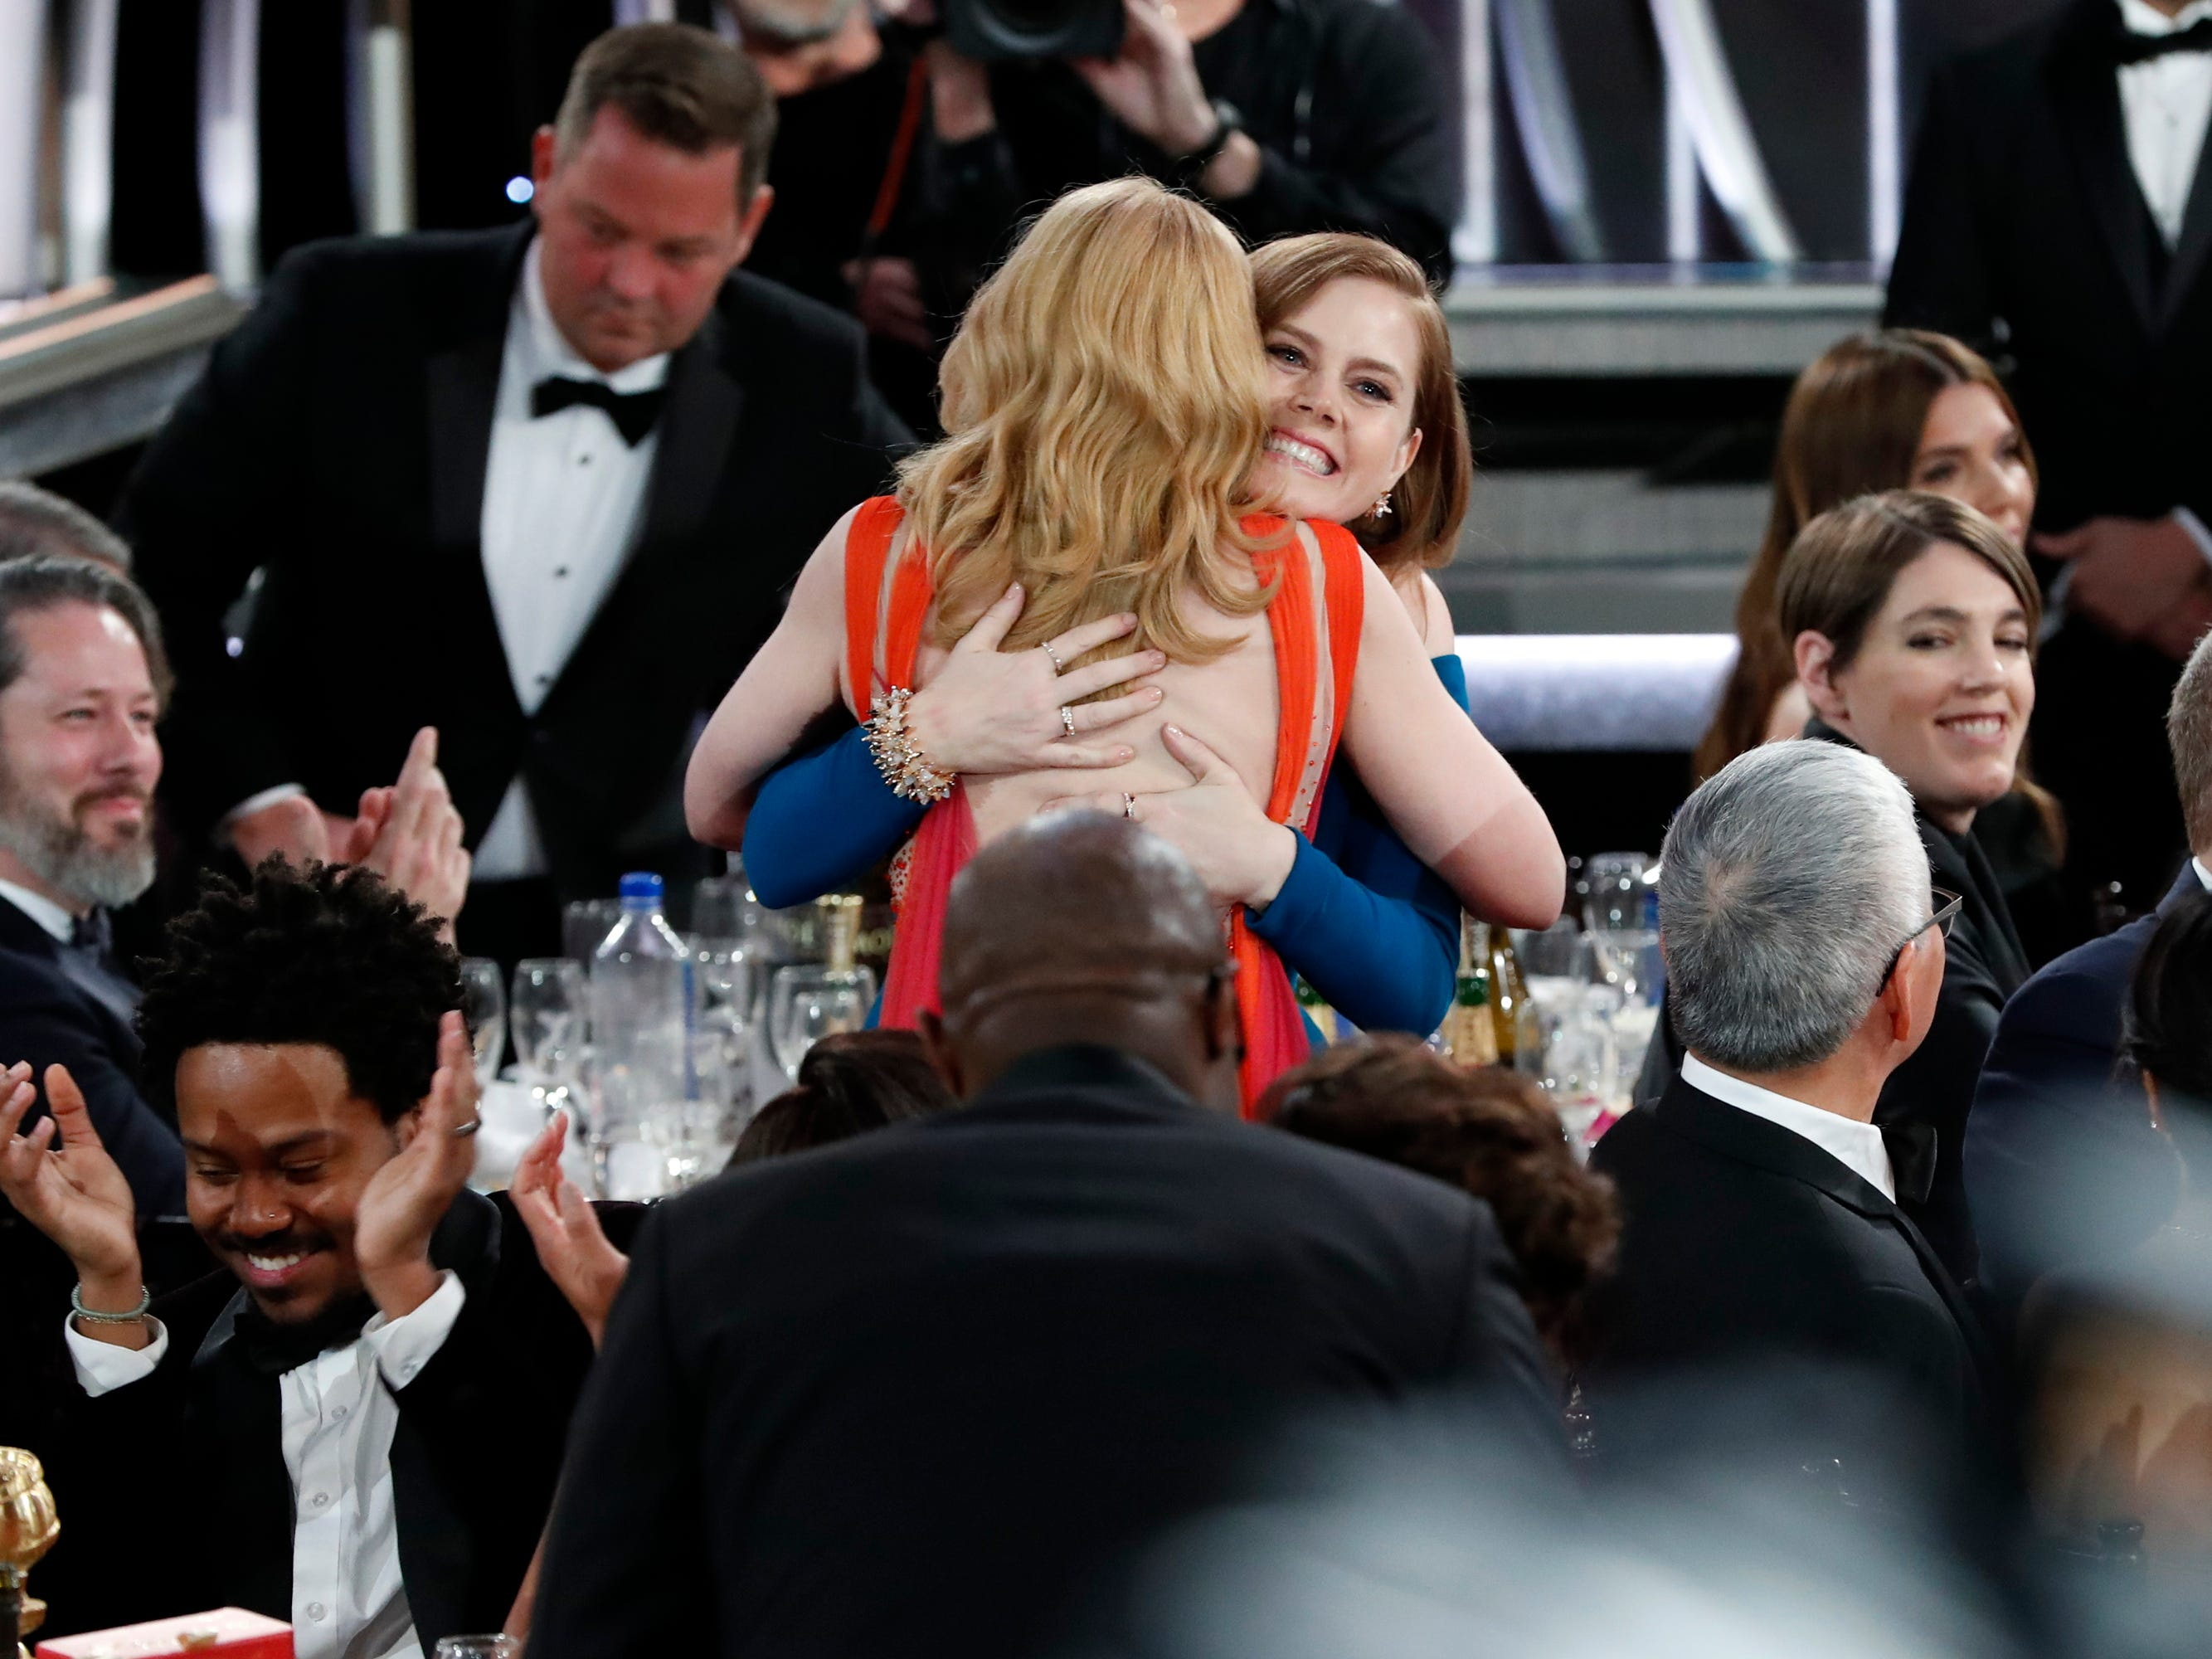 Amy Adams hugs Patricia Clarkson, the winner of Best Supporting Actress - Series/Limited Series/TV Movie during the 76th Golden Globe Awards.